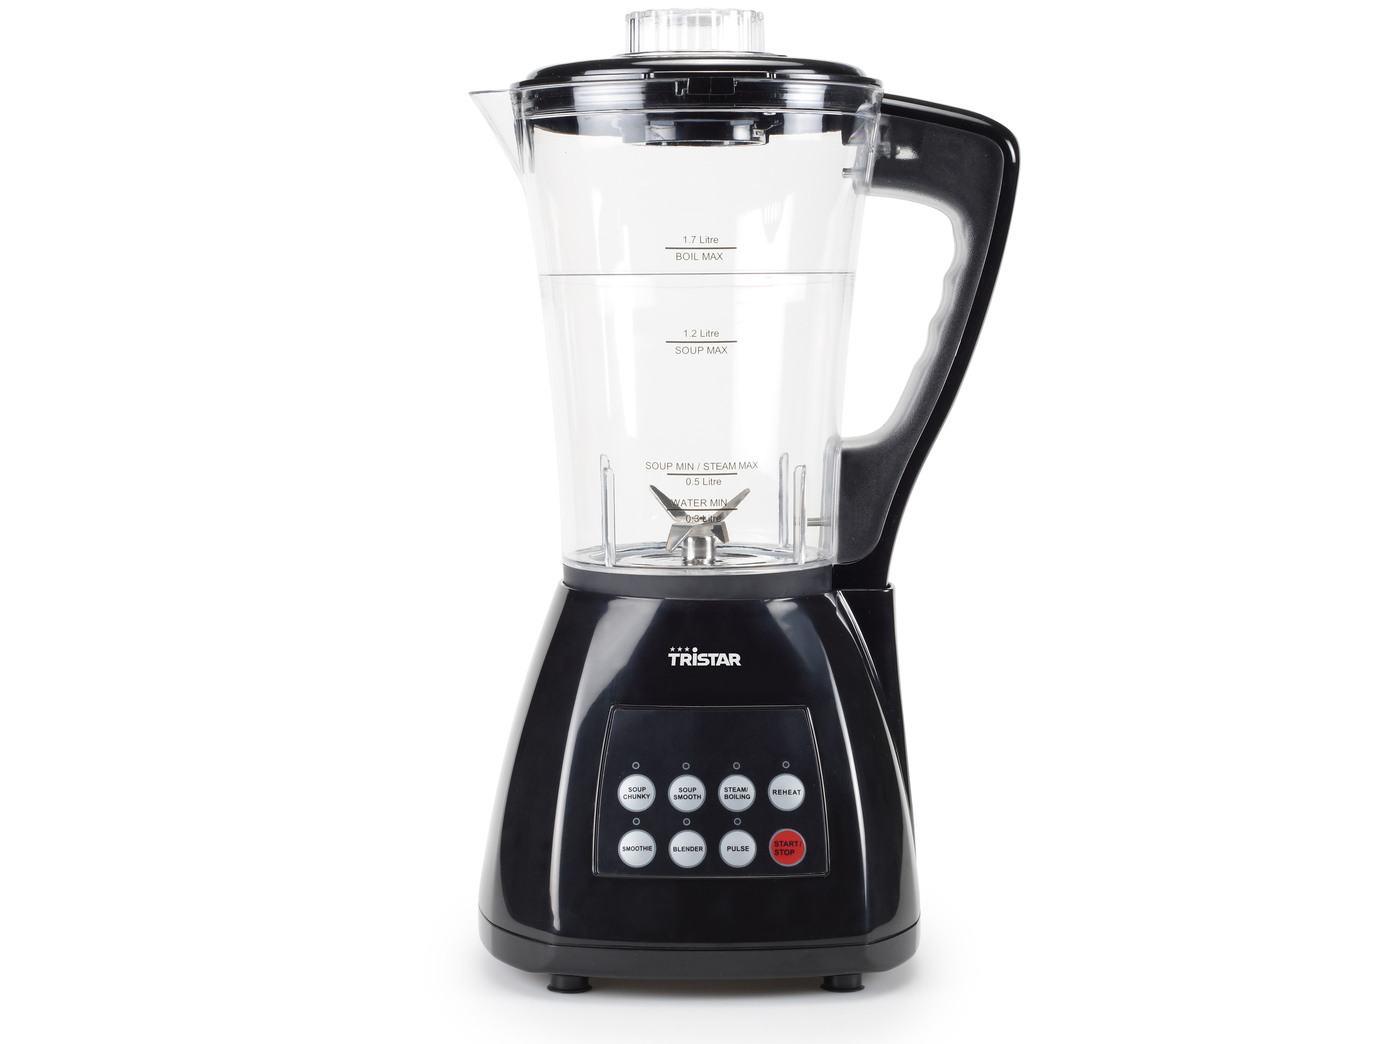 900 watt blender mit kochfunktion 7 programme standmixer smoothie maker mixer 8713016044334 ebay. Black Bedroom Furniture Sets. Home Design Ideas